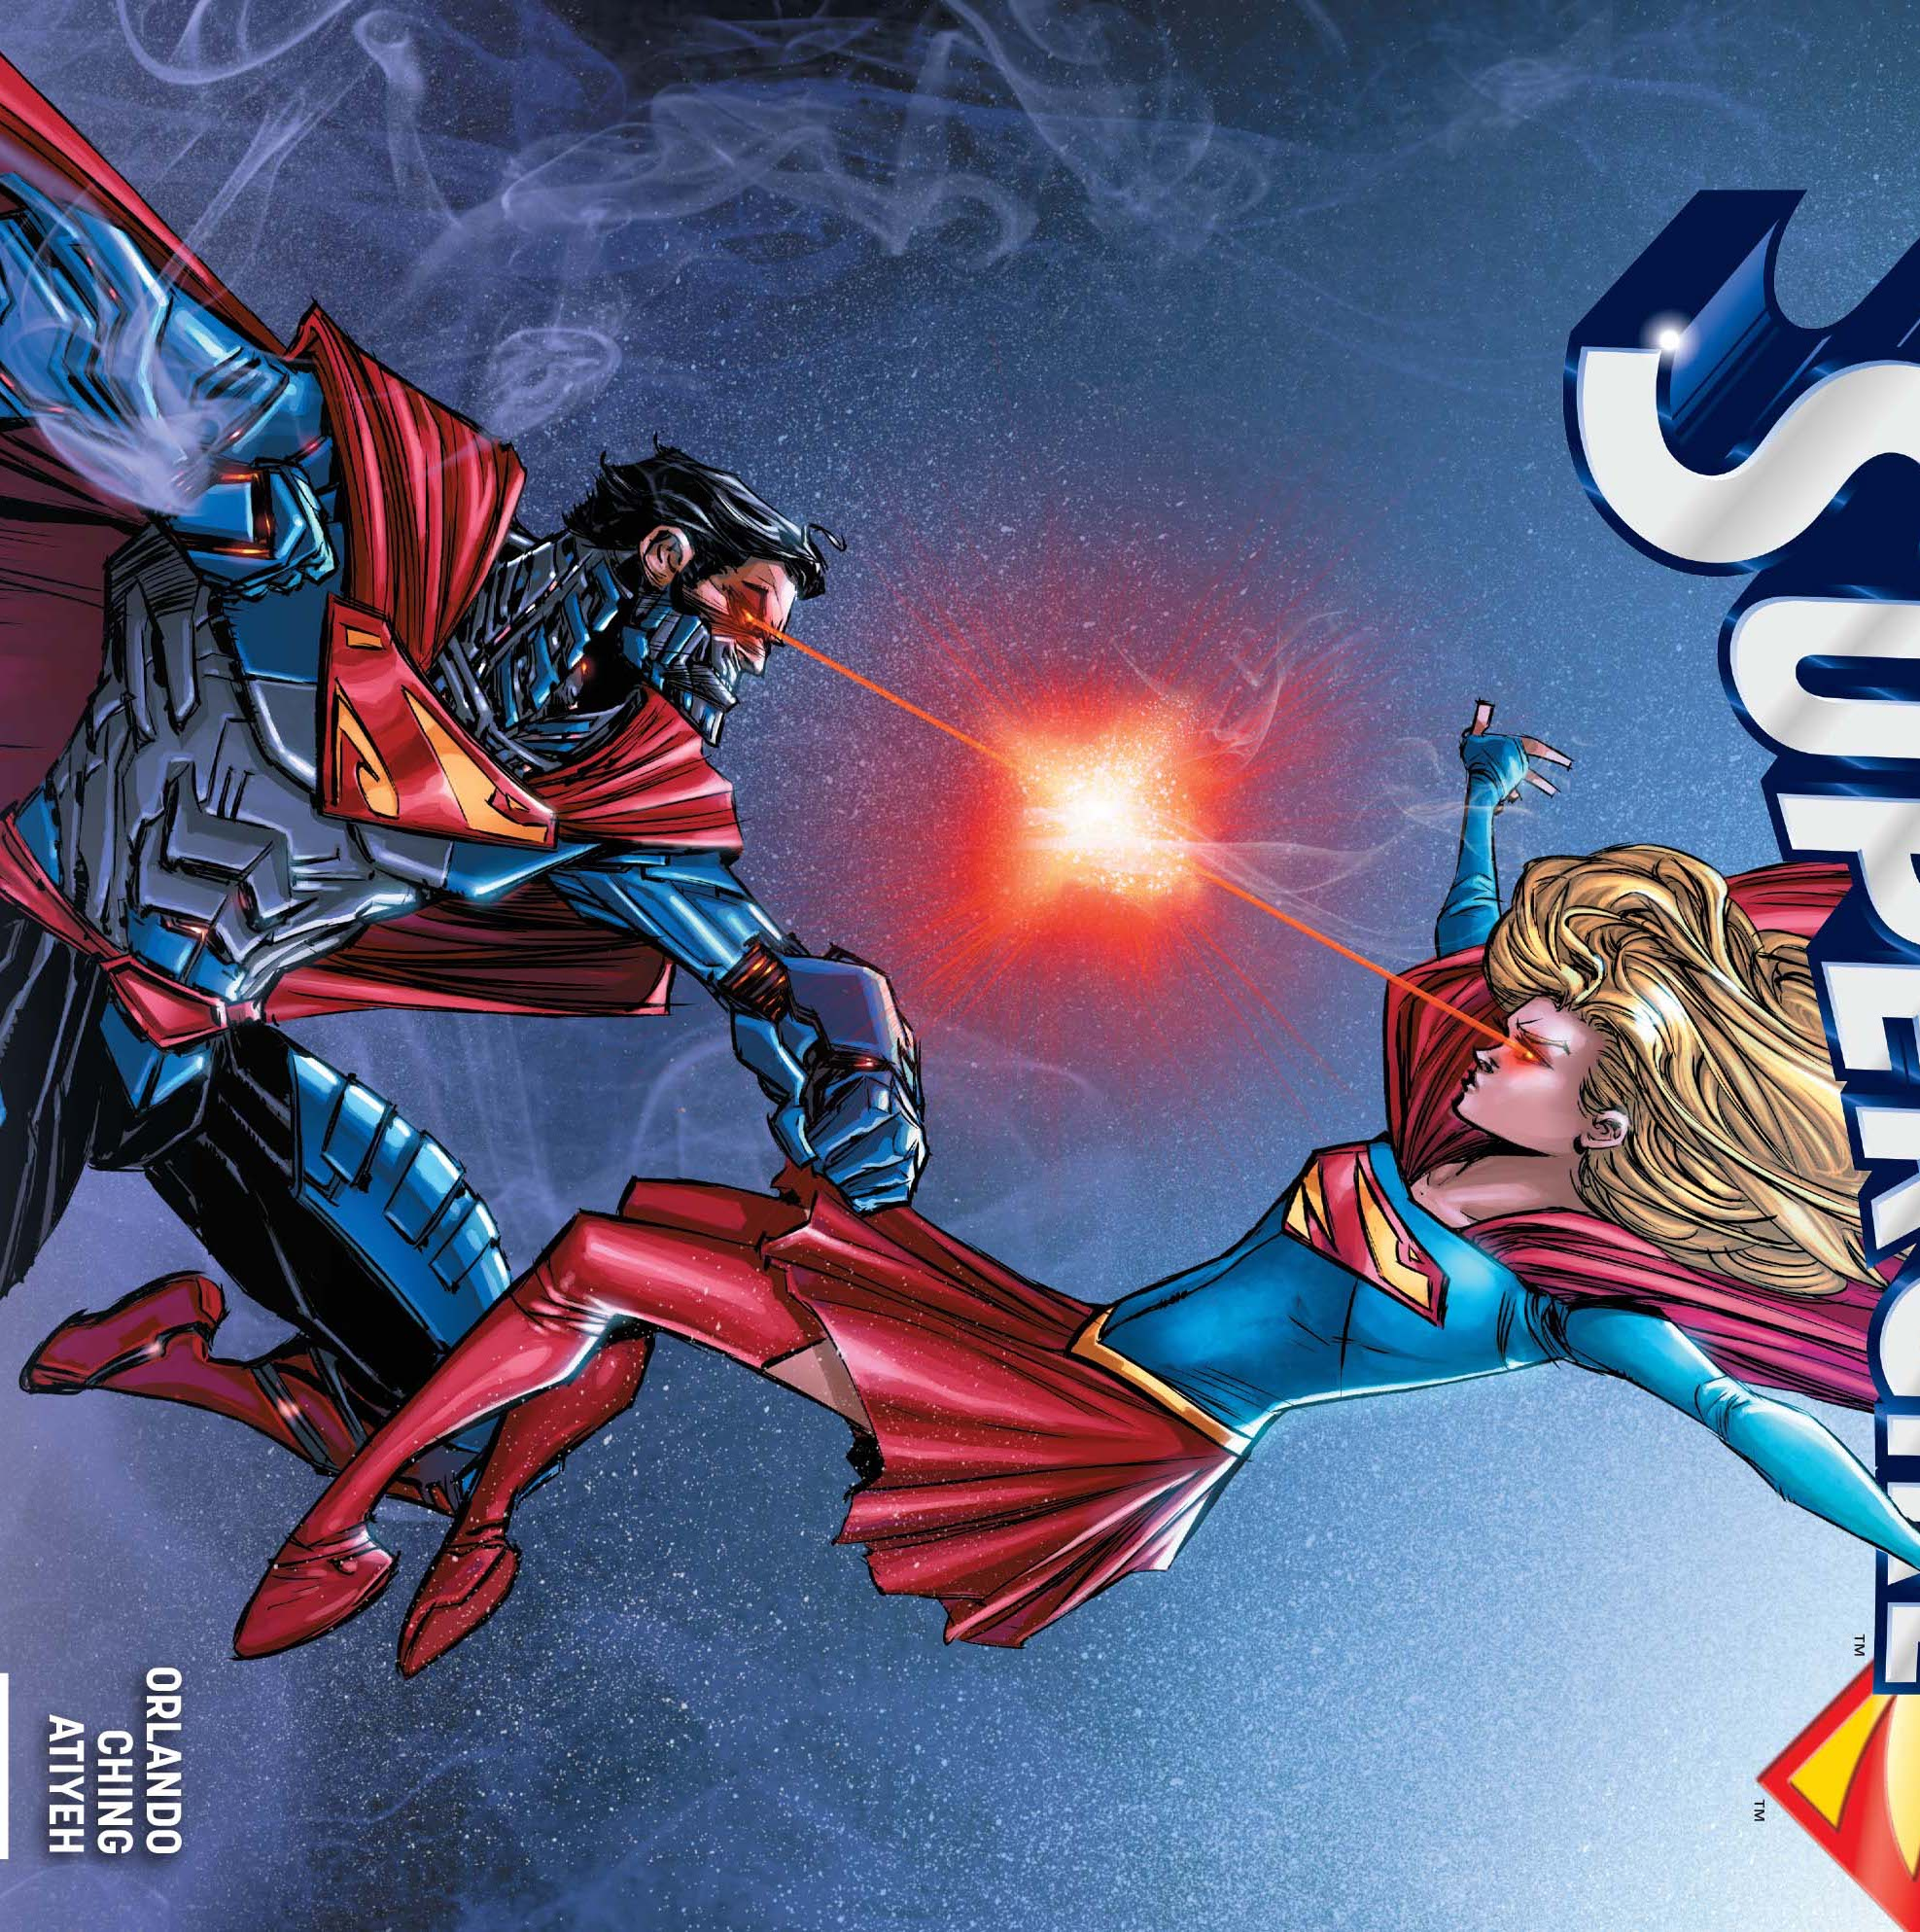 Supergirl #2 Review